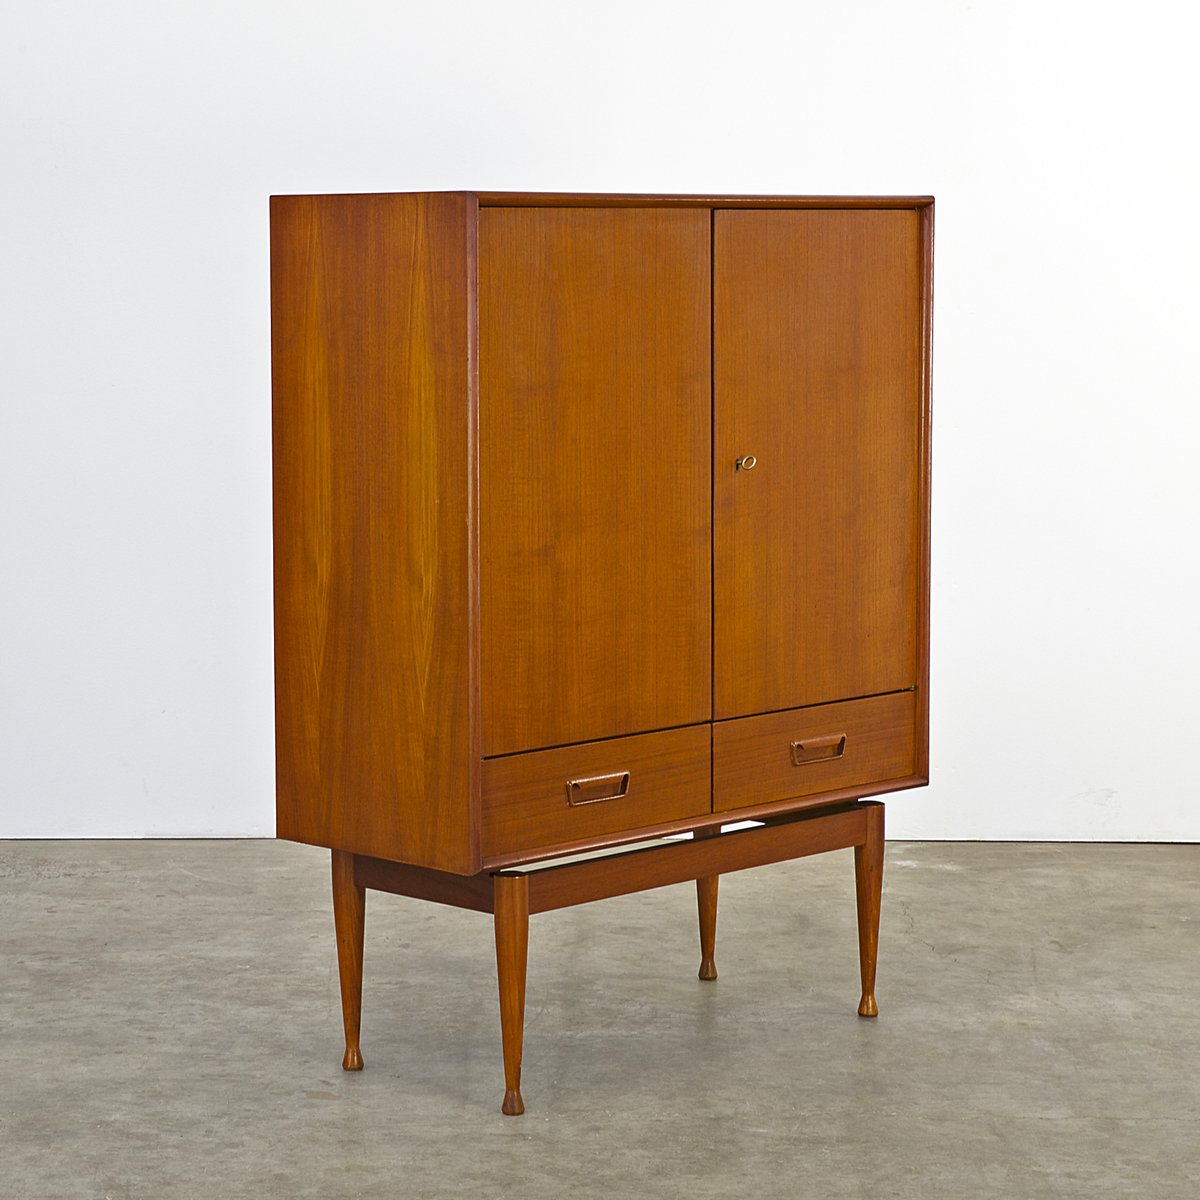 Teak Cabinet With Two Doors And Two Drawers, 1960s 7. $1,386.00. Price Per  Piece